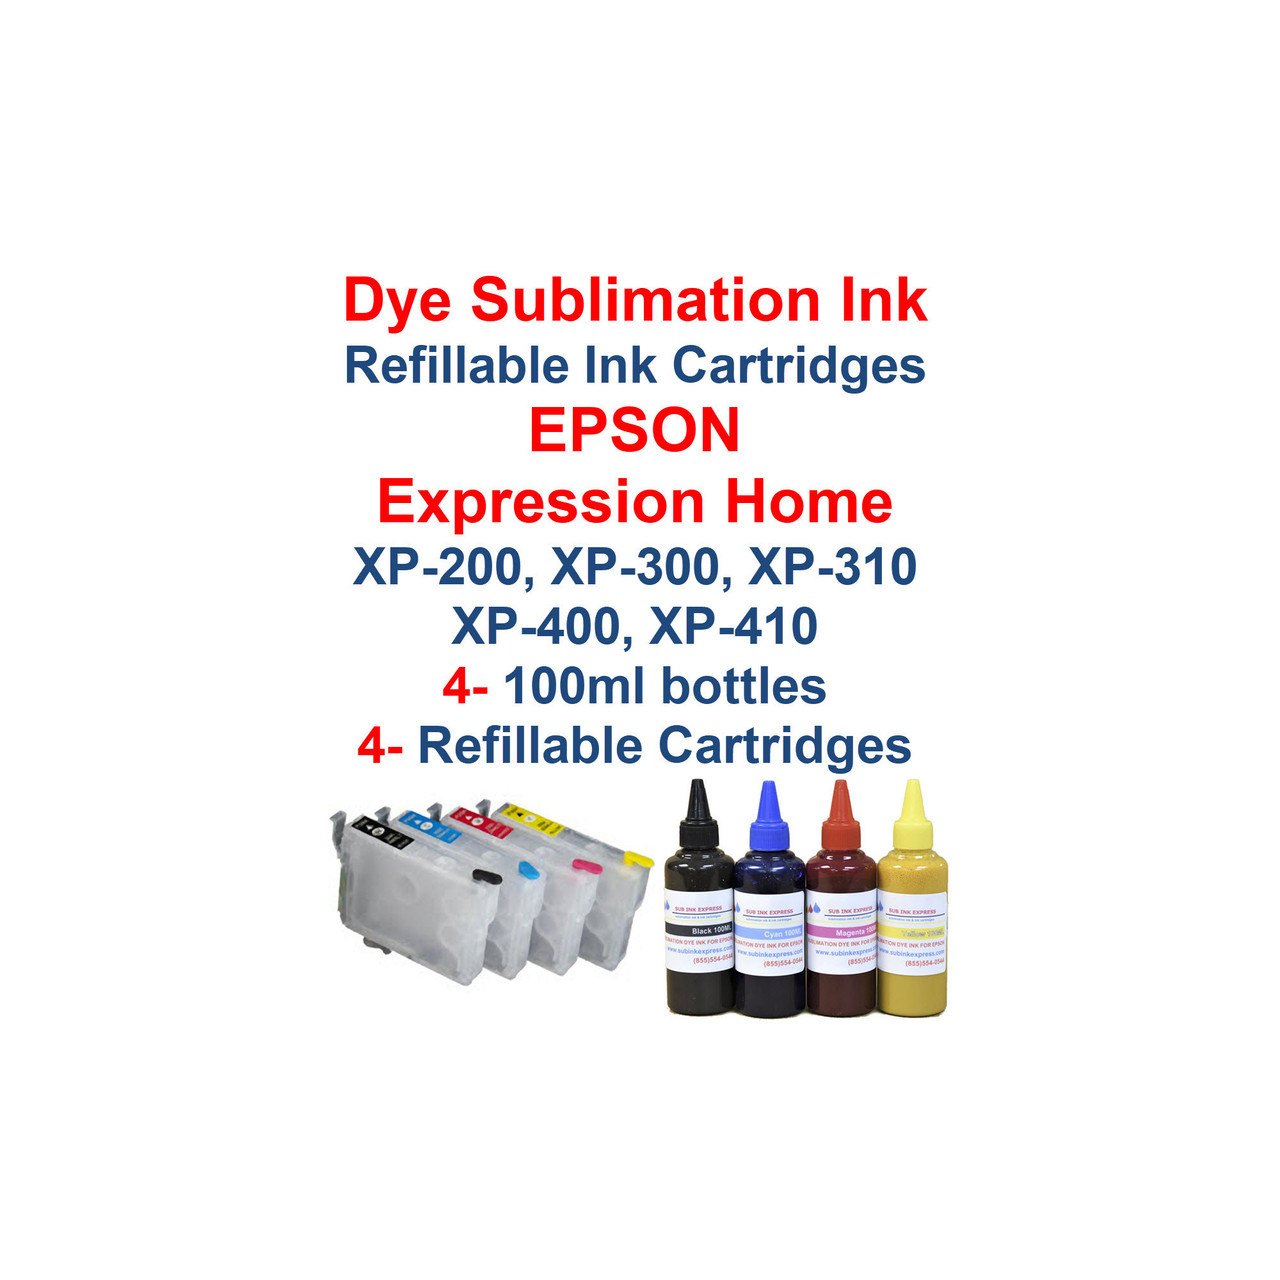 Dye Sublimation ink 4- 100ml bottles Refillable Ink Cartridges with auto reset chips installed for Epson Expression Home xp-200 xp-300 xp-310 xp-400 xp-410 printers  >> Package works with Printers: Epson Expression Home xp-200 Epson Expression Home xp-300 Epson Expression Home xp-310 Epson Expression Home xp-400 Epson Expression Home xp-410  Compatible with cartridge number: T200XL120, T200XL220, T200XL320, T200XL420  Package includes:  4- 100ml bottles Dye Sublimation ink - 1 Black, 1 Cyan, 1 Magenta, 1 Yellow 4- Refillable Ink Cartridges with auto reset chips 4- Syringes for filling cartridges  >> Our Refillable Cartridges have a Auto Reset Chip installed on them, no chip Resetter is needed  Dye Sublimation Ink  Heat Transfer printing  T-Shirts, Hats, Metal, Ceramic, Mugs, Plates, etc...  Works with all substrates    No extra software  No color profiles needed   >>> Los Angeles same day delivery available (Contact us for pricing) <<<